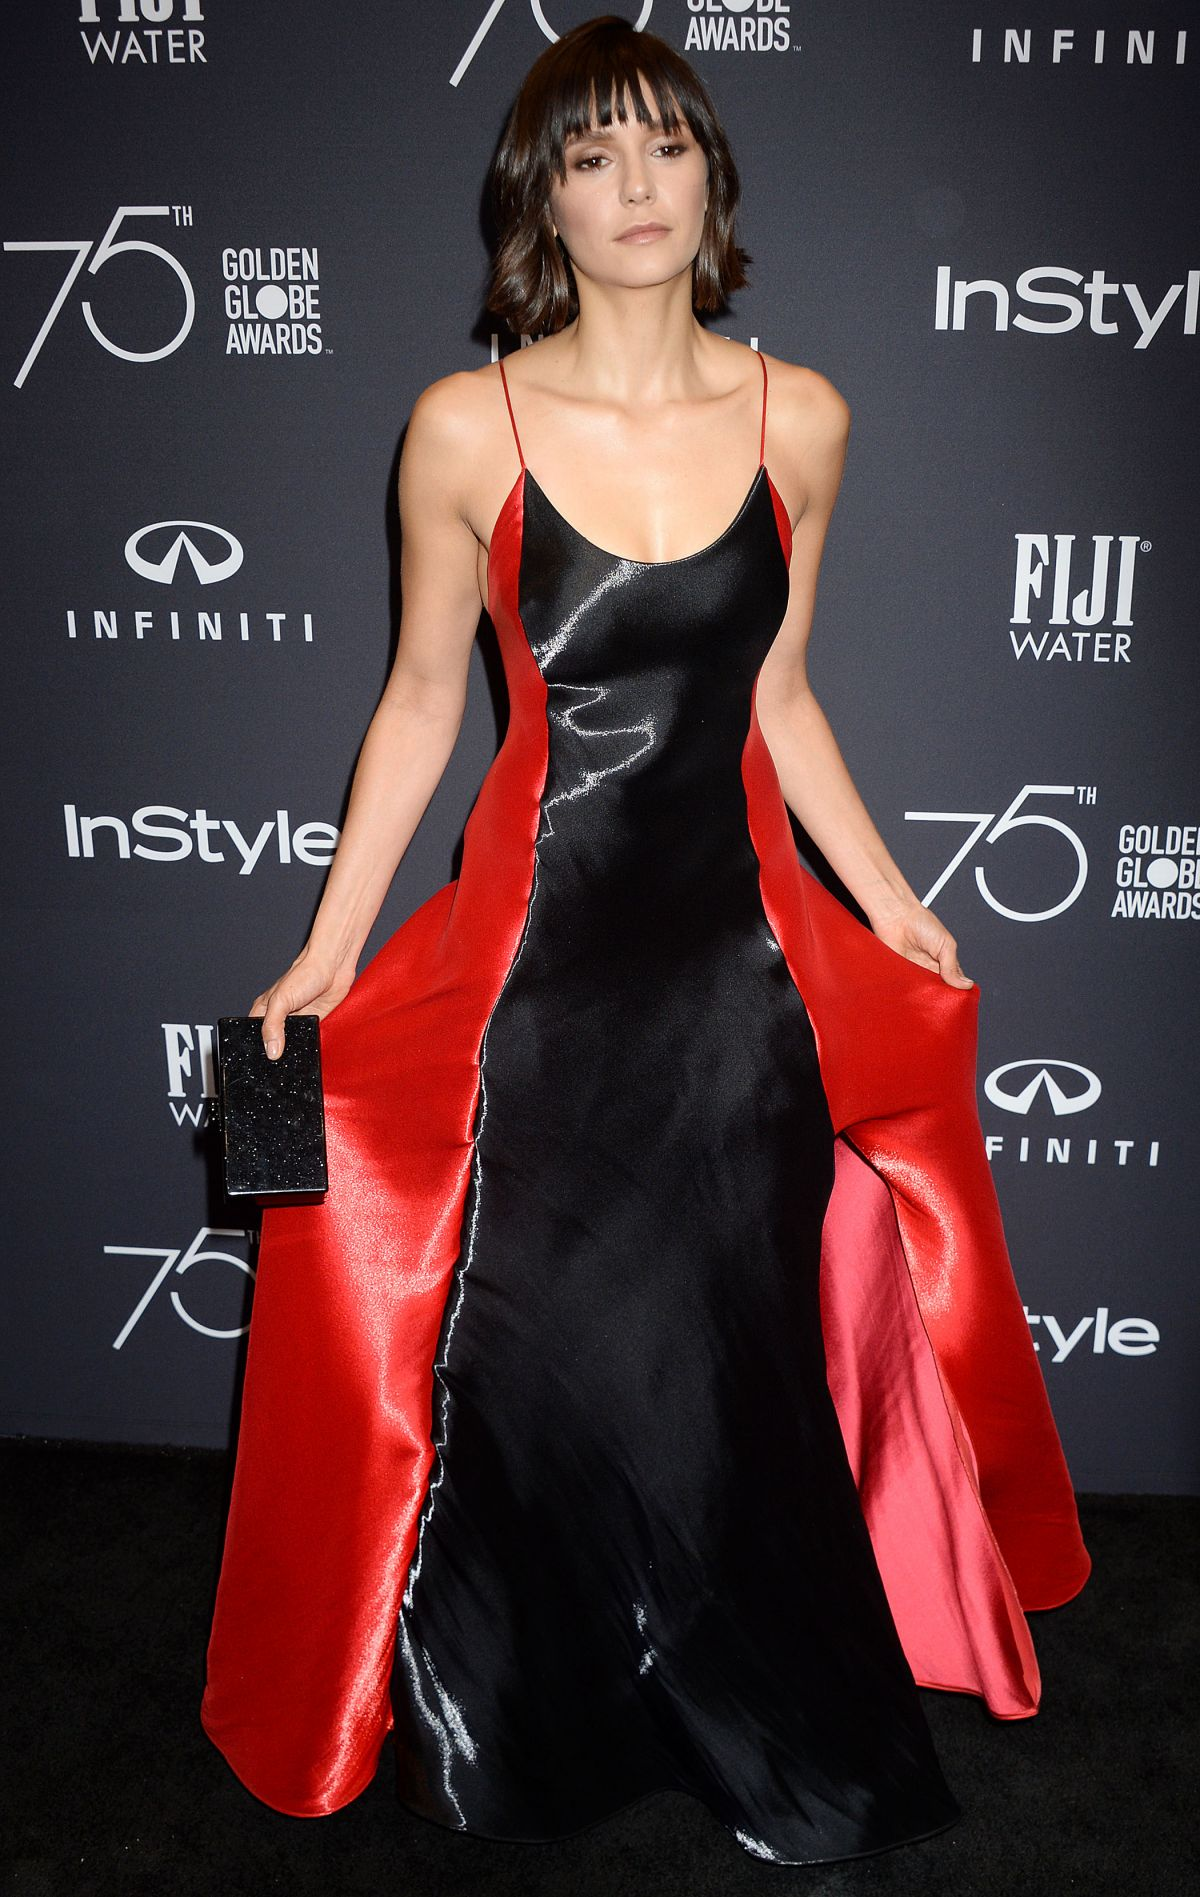 Nina Dobrev At HFPA and InStyle celebrate Golden Globe Season, Los Angeles   nina-dobrev-at-hfpa-and-instyle-celebrate-golden-globe-season-los-angeles-1